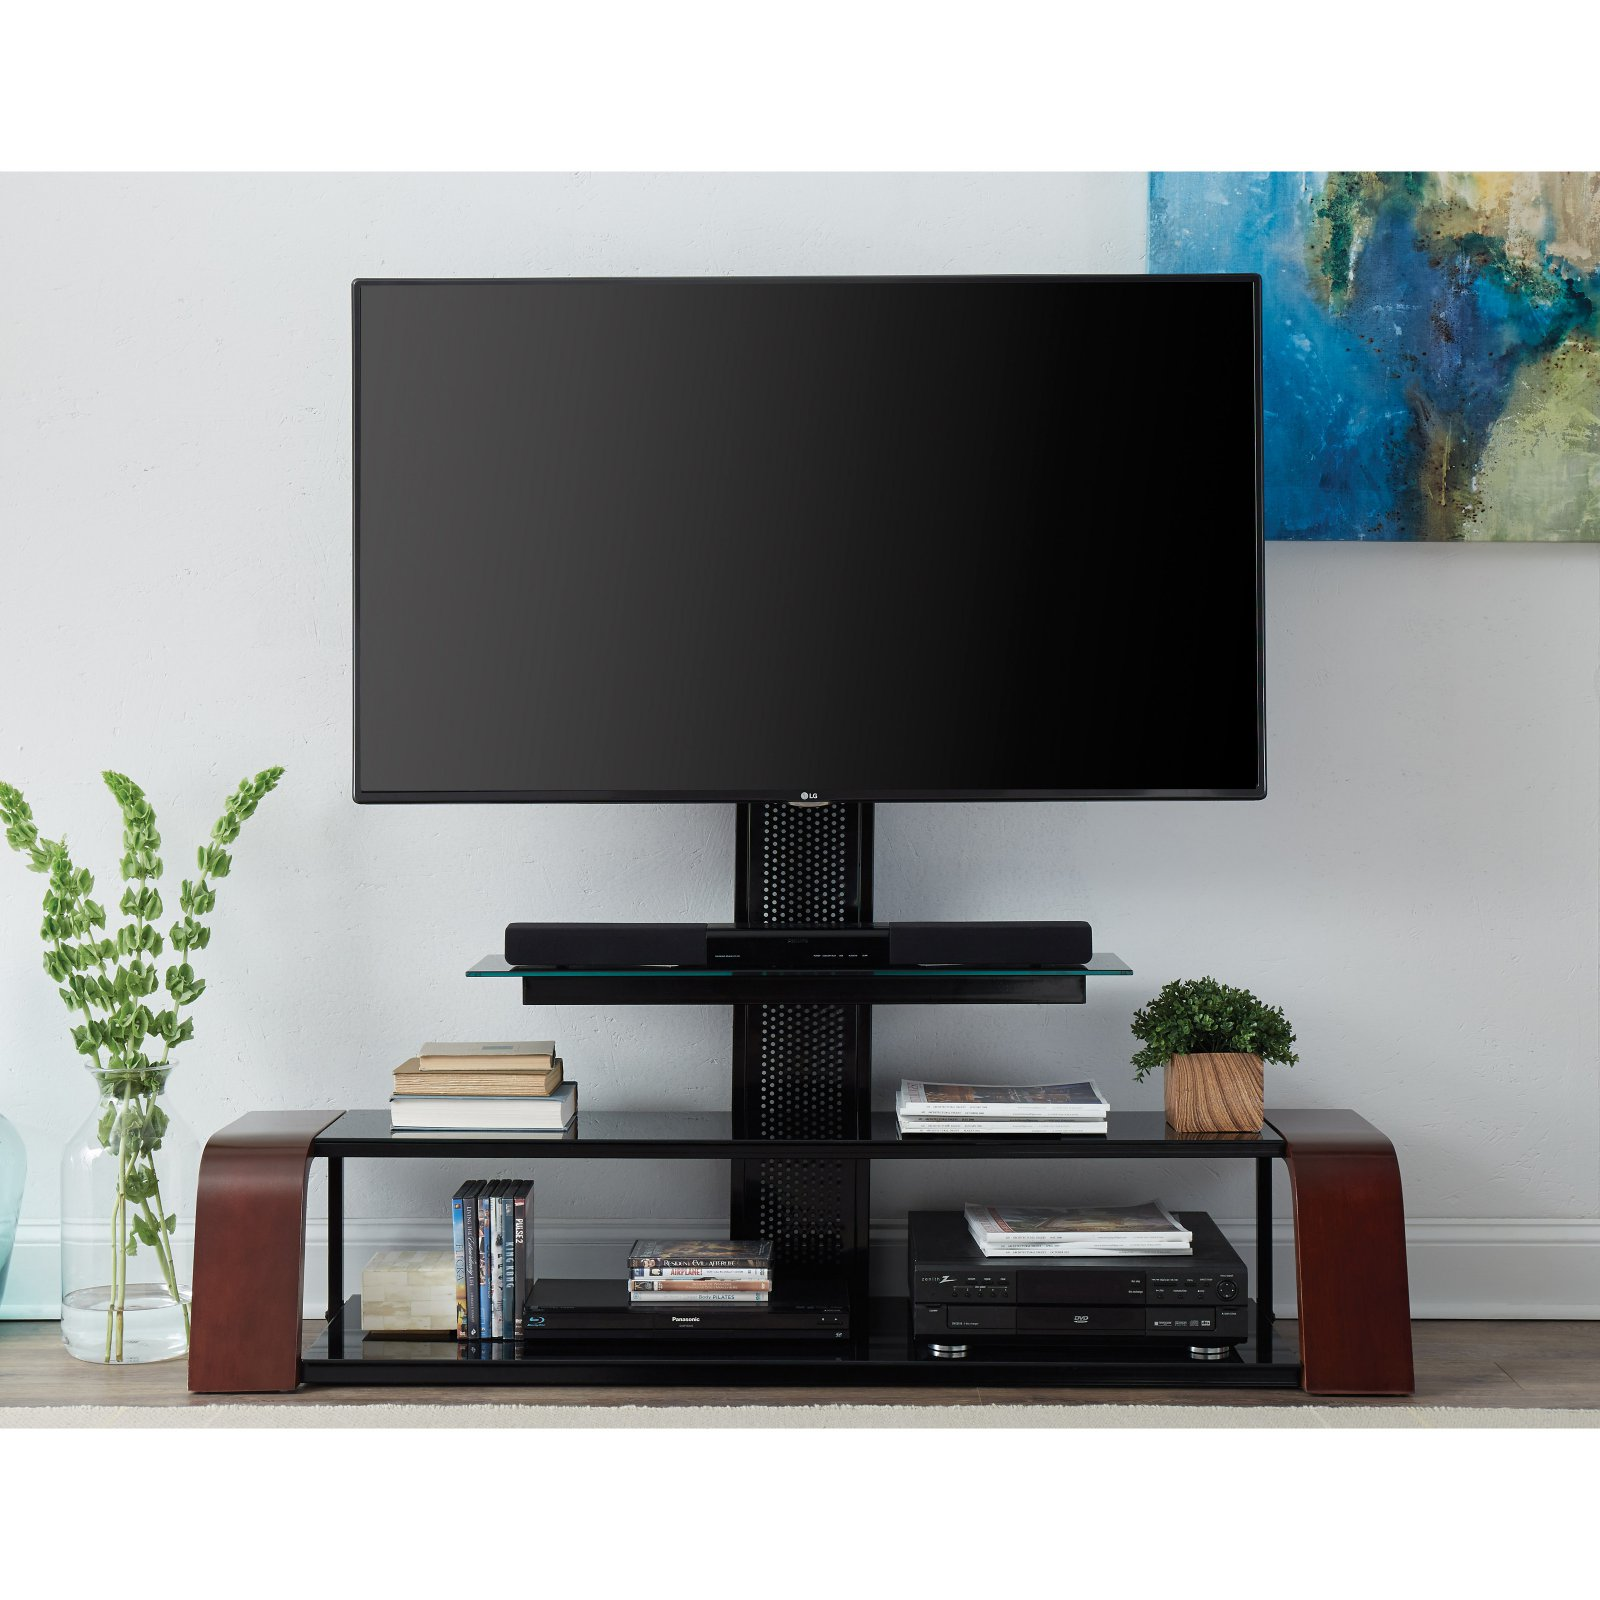 Sandberg Furniture Aria 62 in. TV Stand